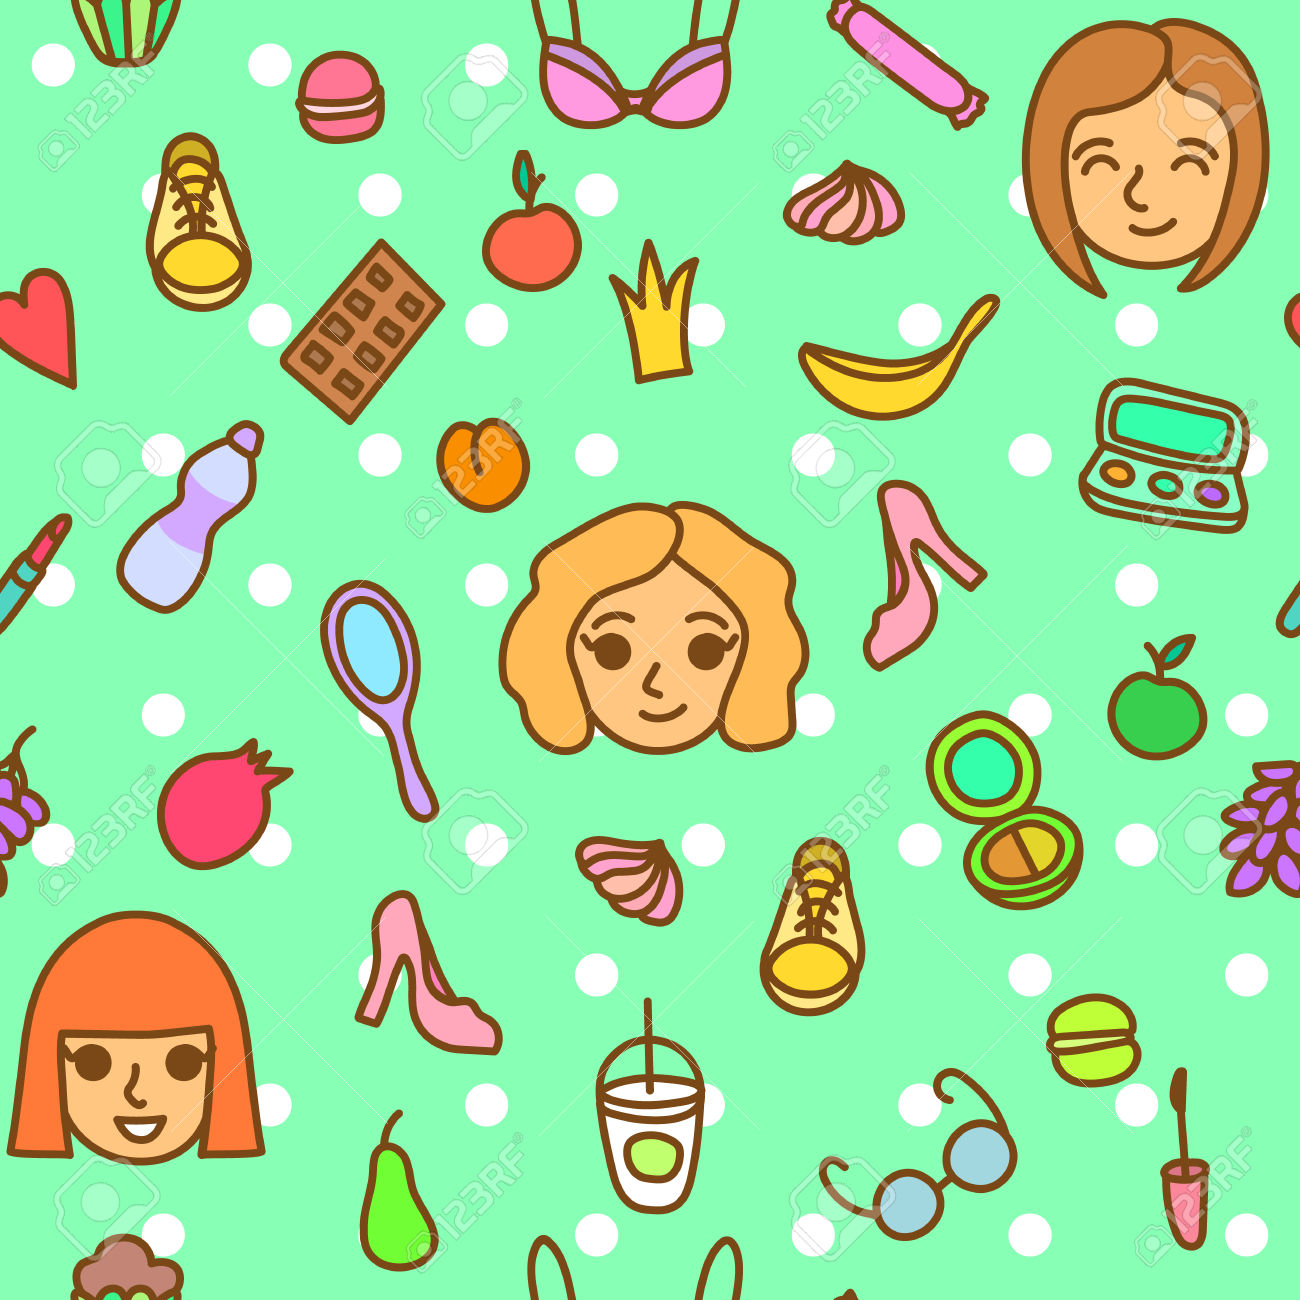 Cute Casual Fashion Seamless Pattern With Girl Faces And Everyday.